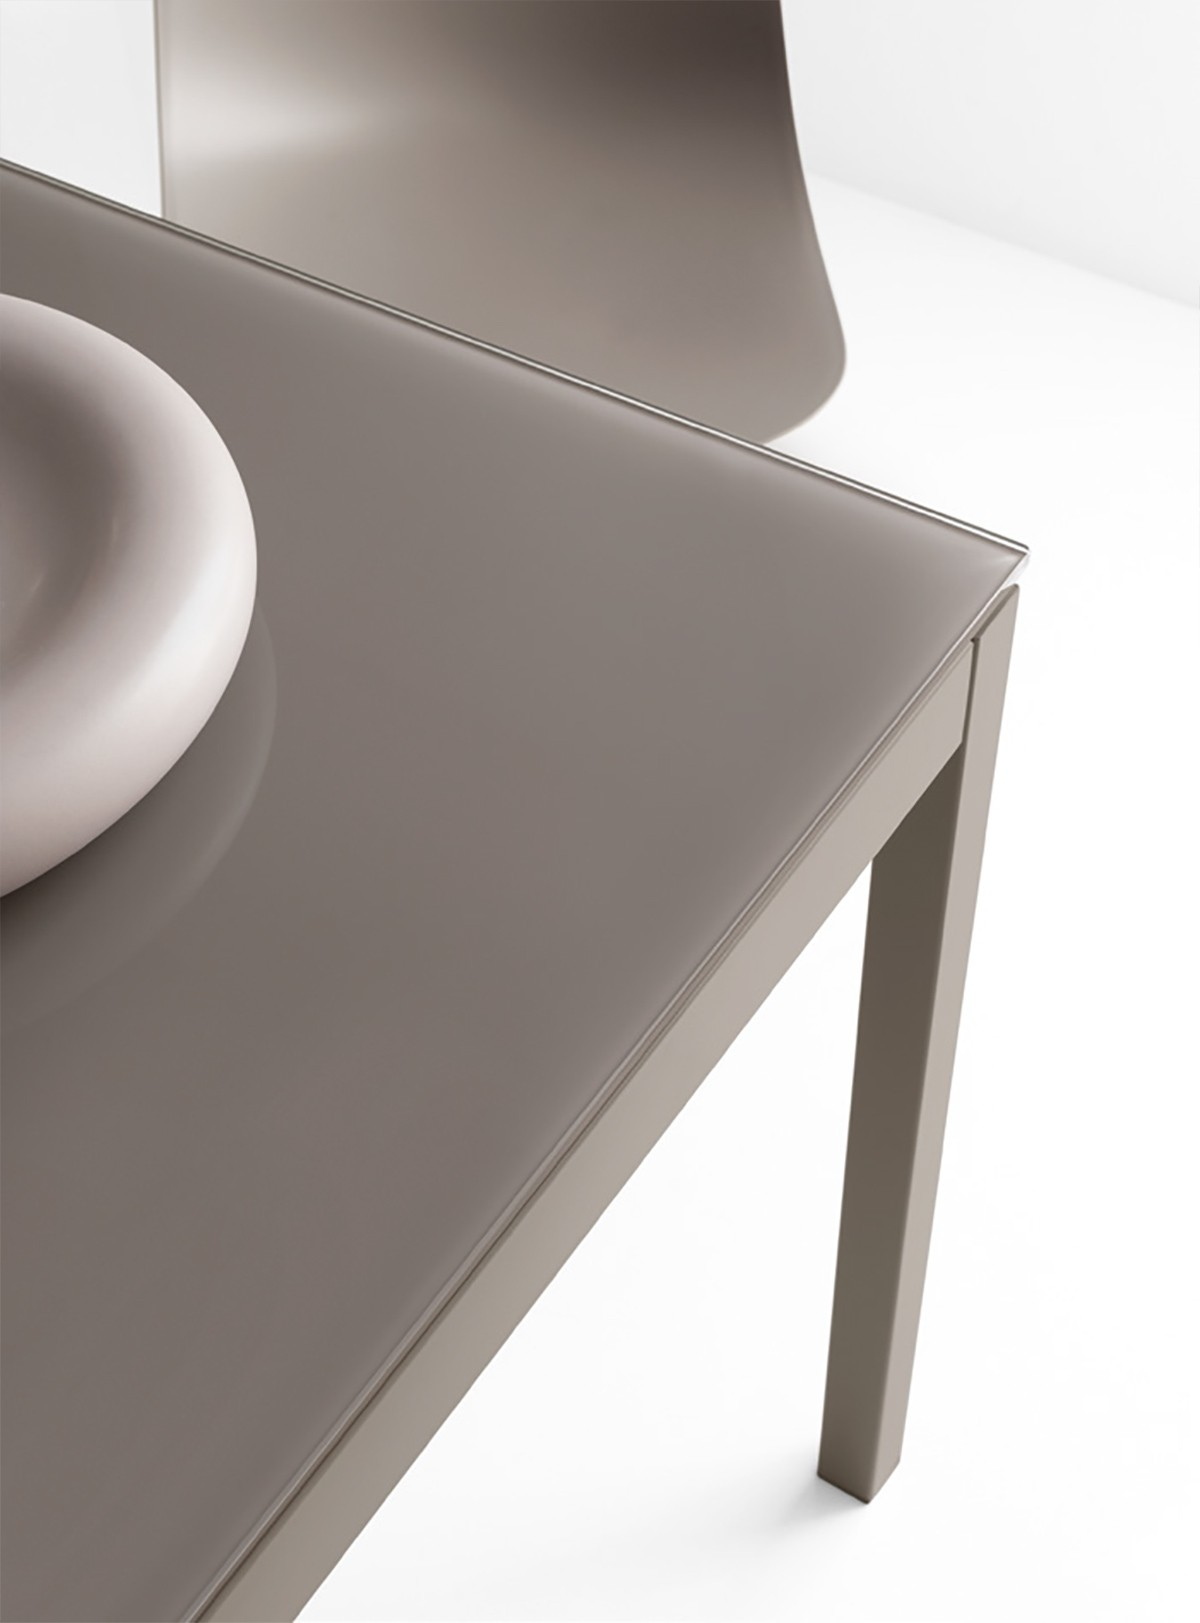 Snap Connubia By Calligaris Brand Connubia By